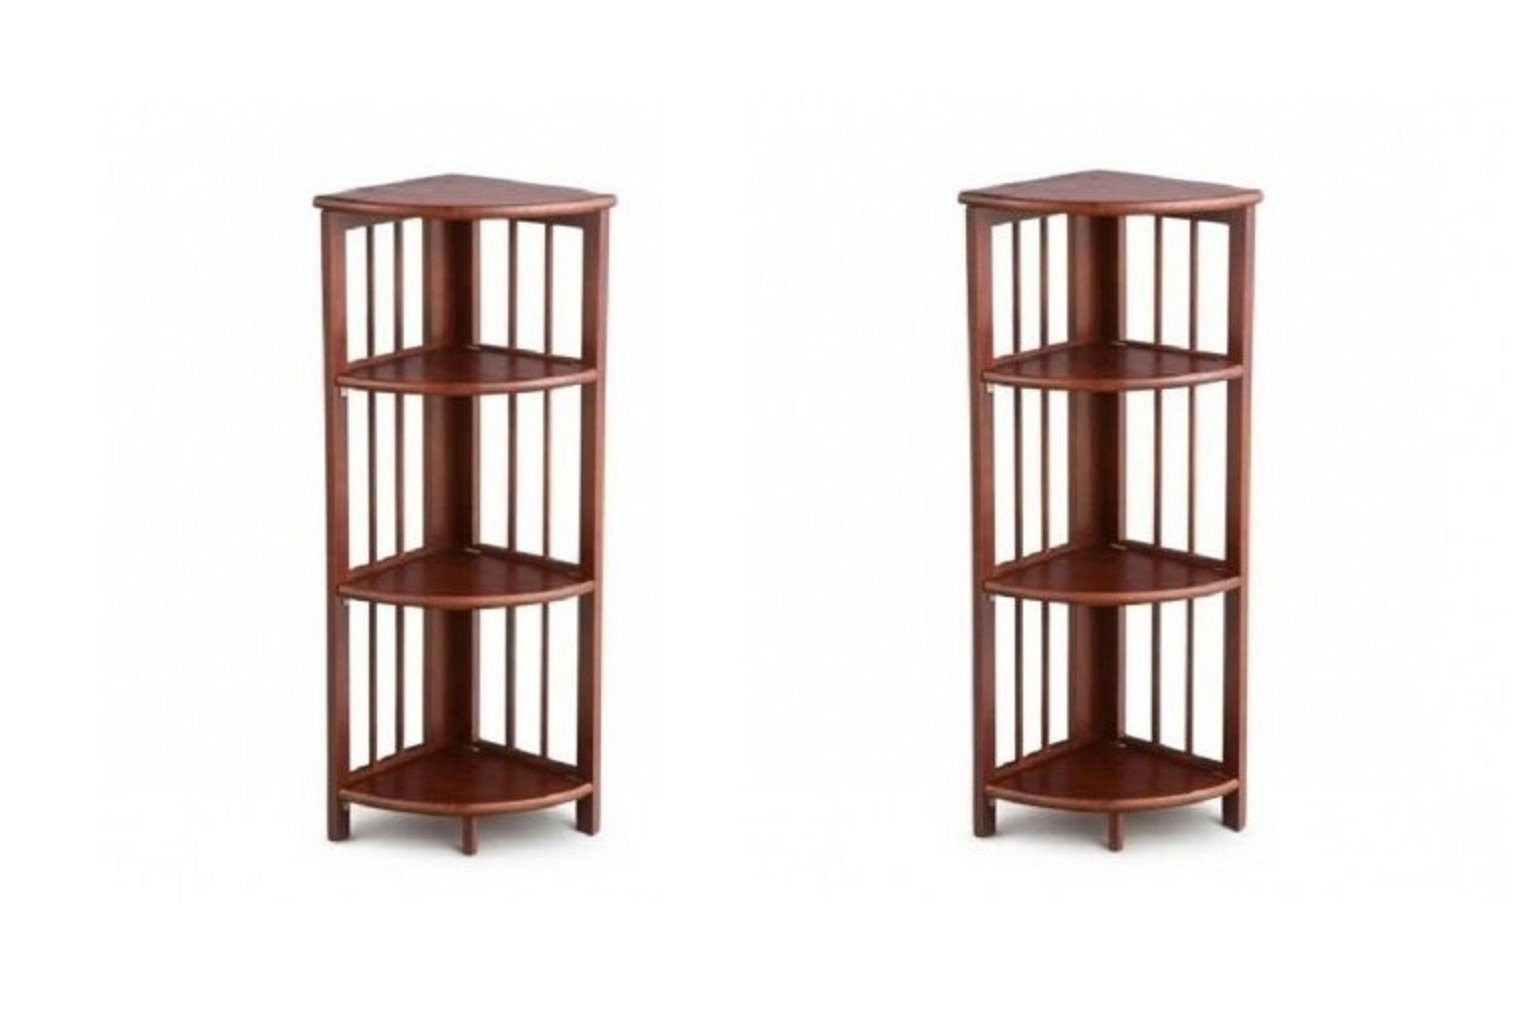 3 Level Corner Folding Pine Wood Book Case Set of 2 - Walnut 38'' by HOMESUPPLIES